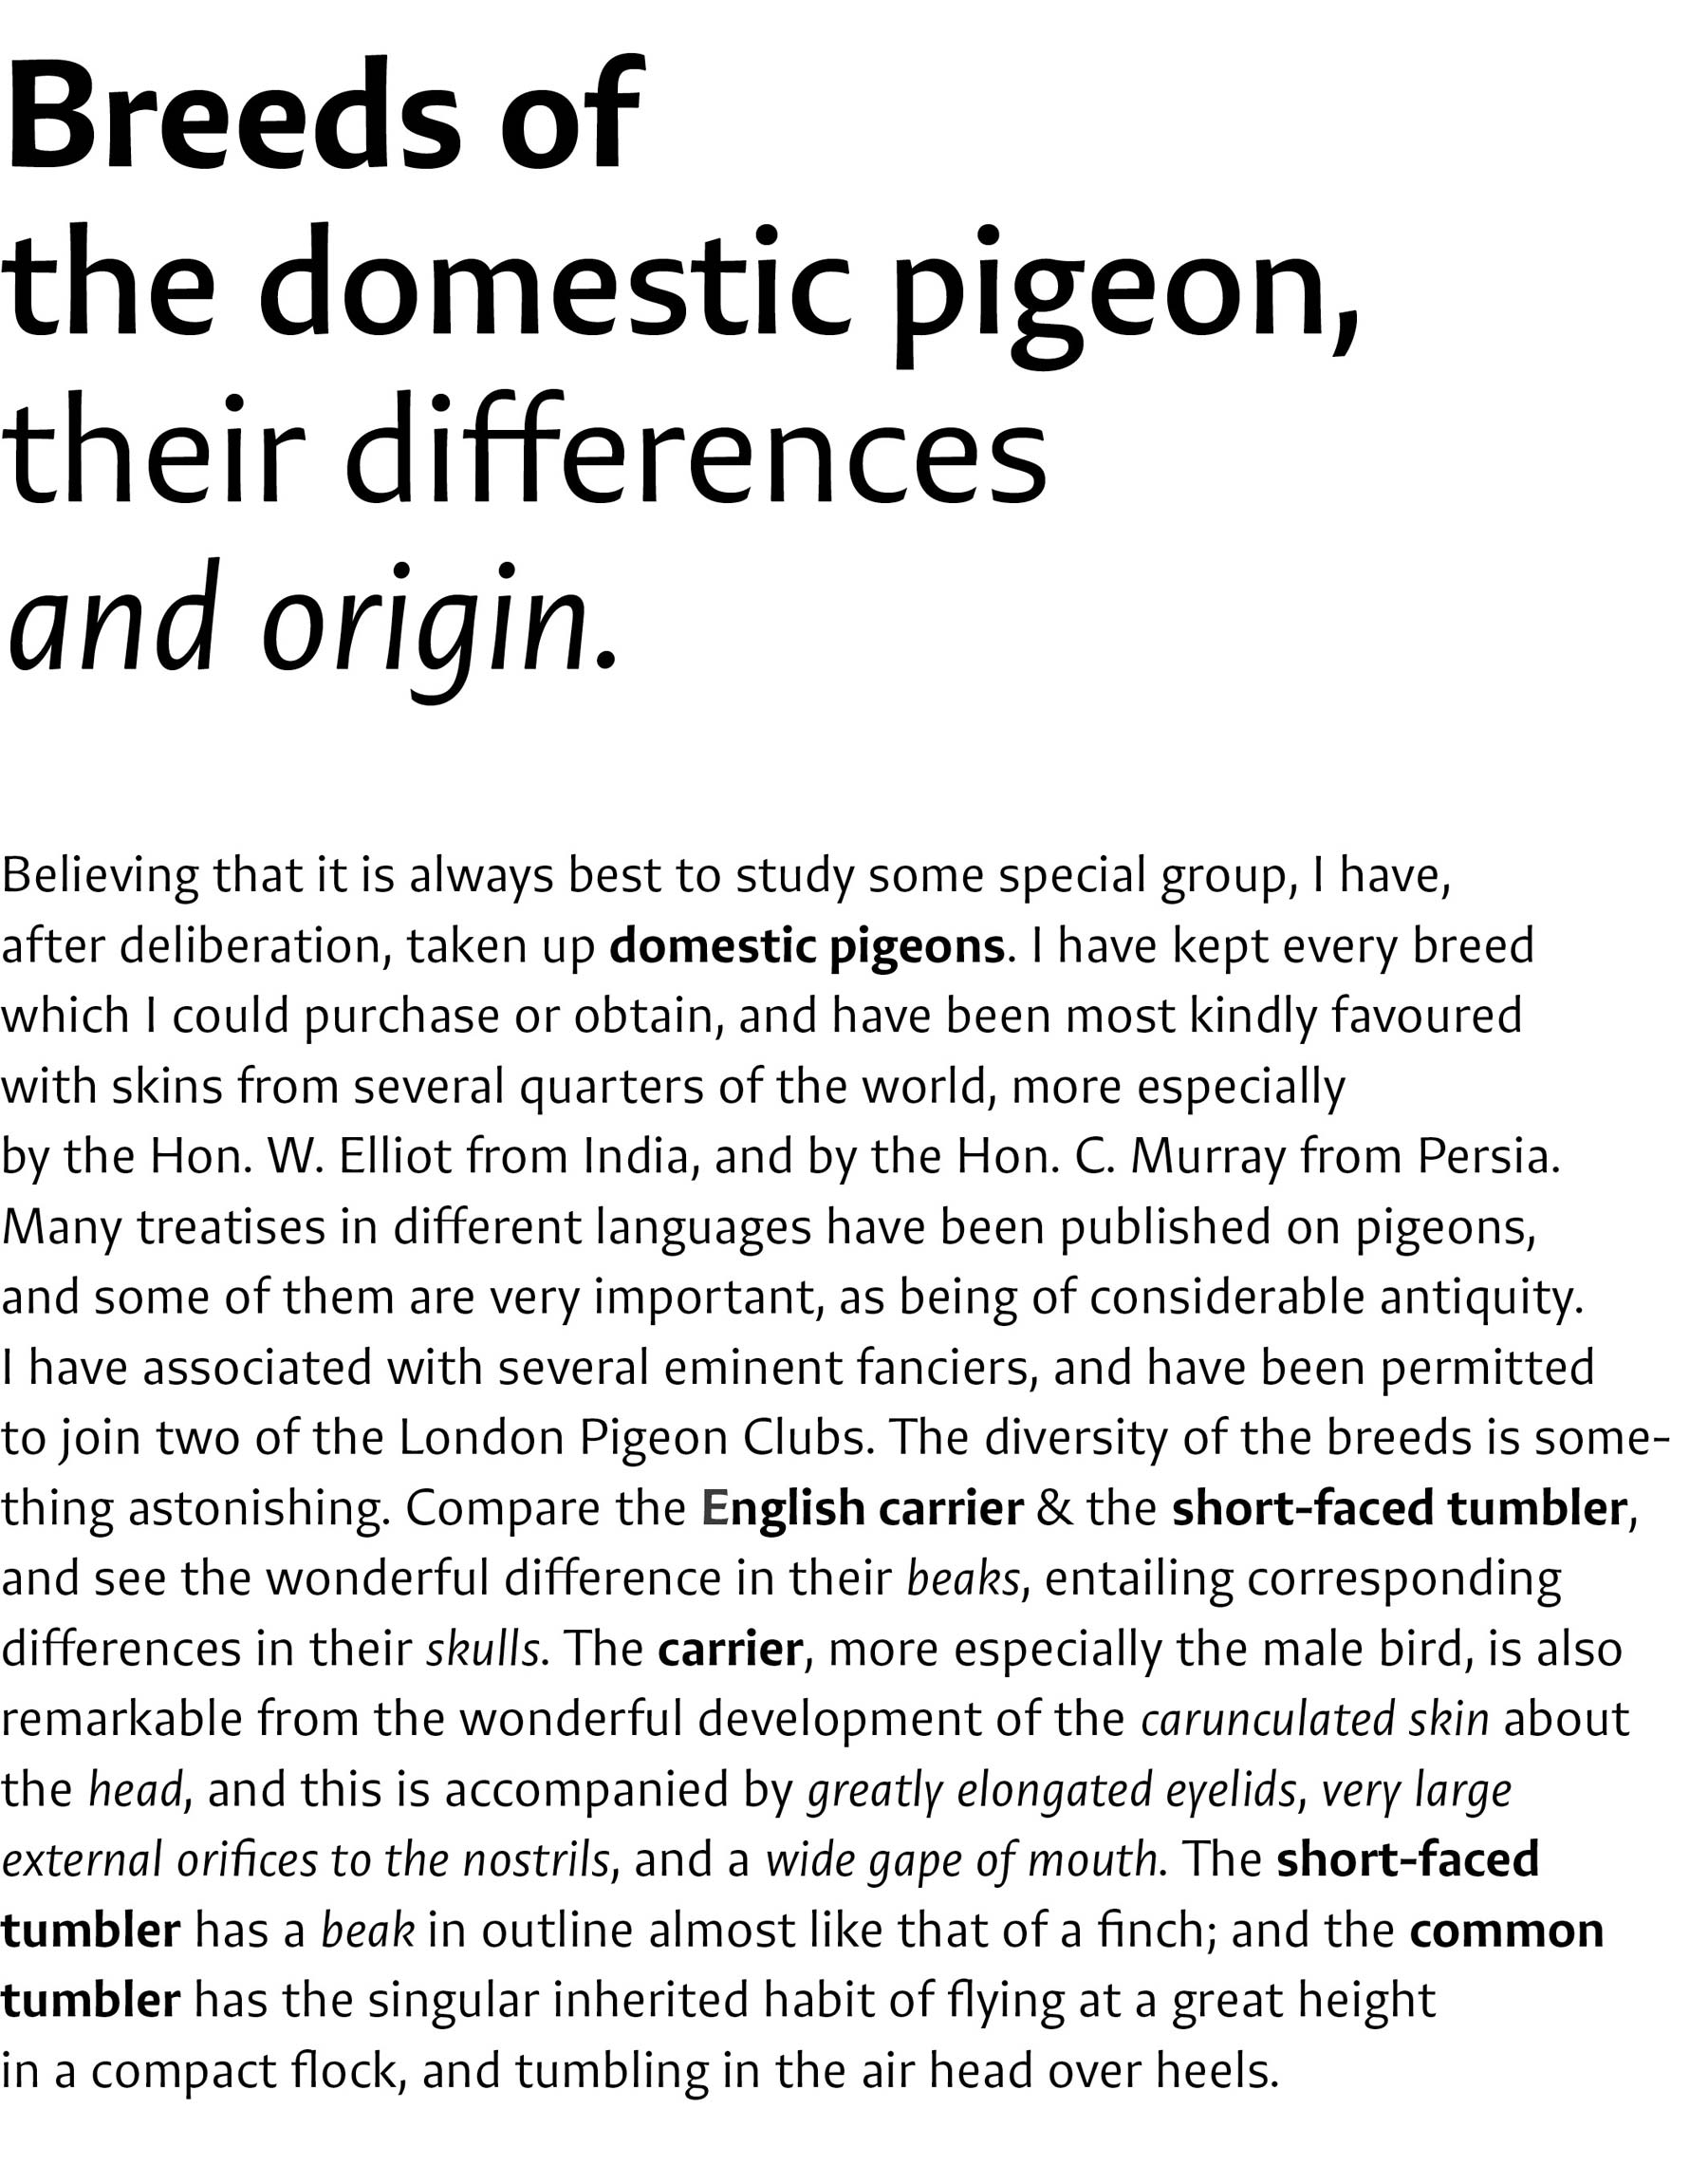 On-the-Origin-of-Species-pigeons